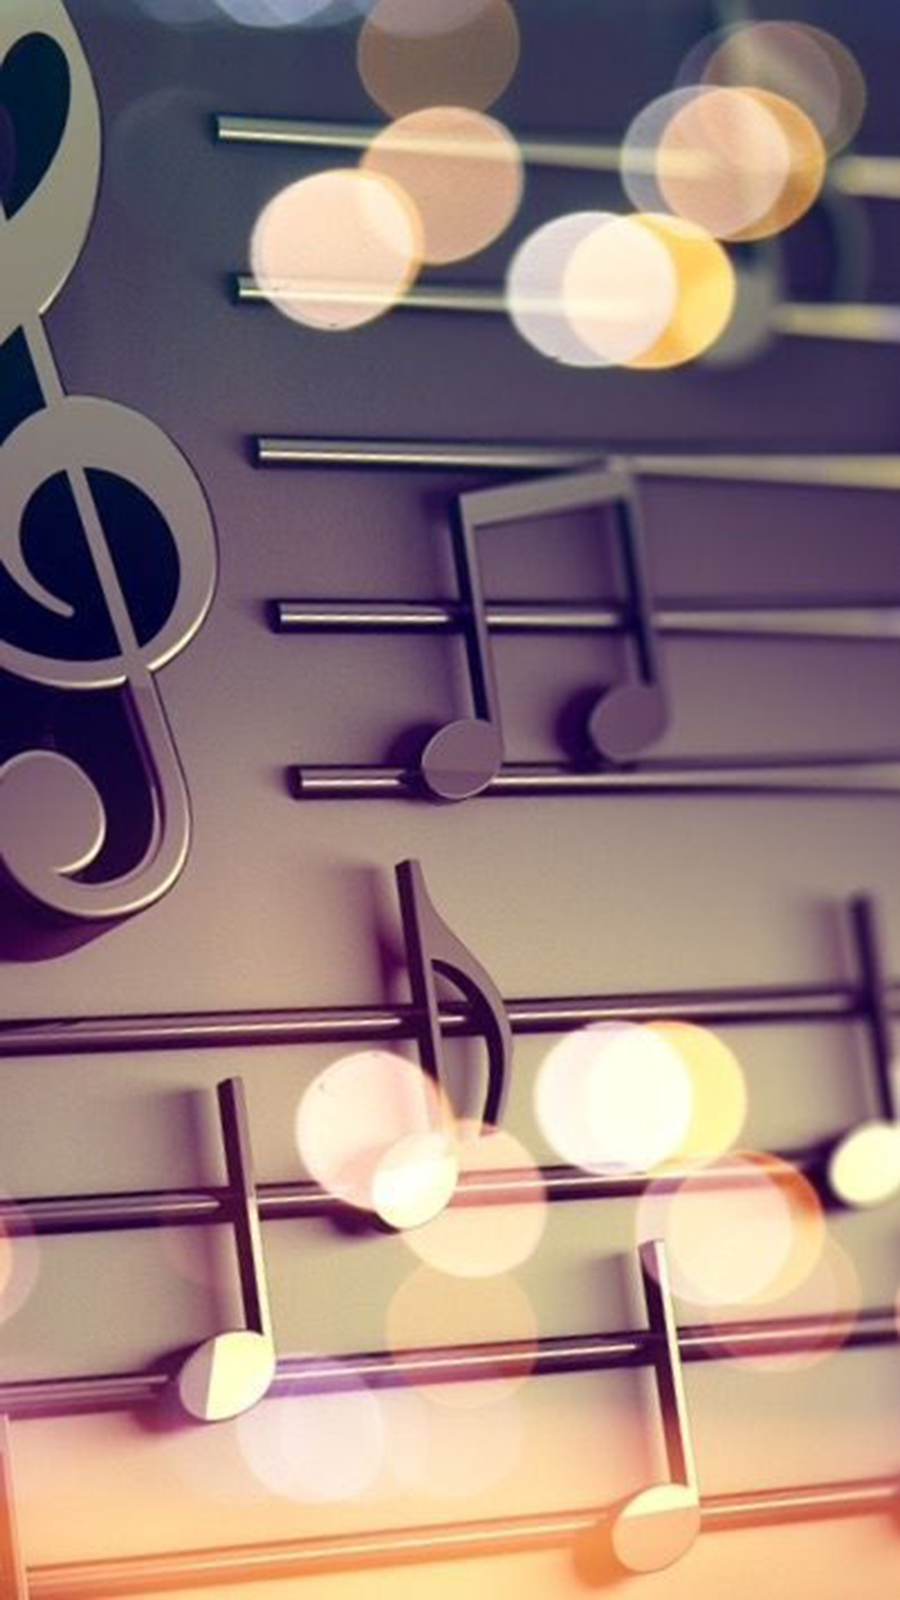 Music & Note Wallpapers Download For Your Device